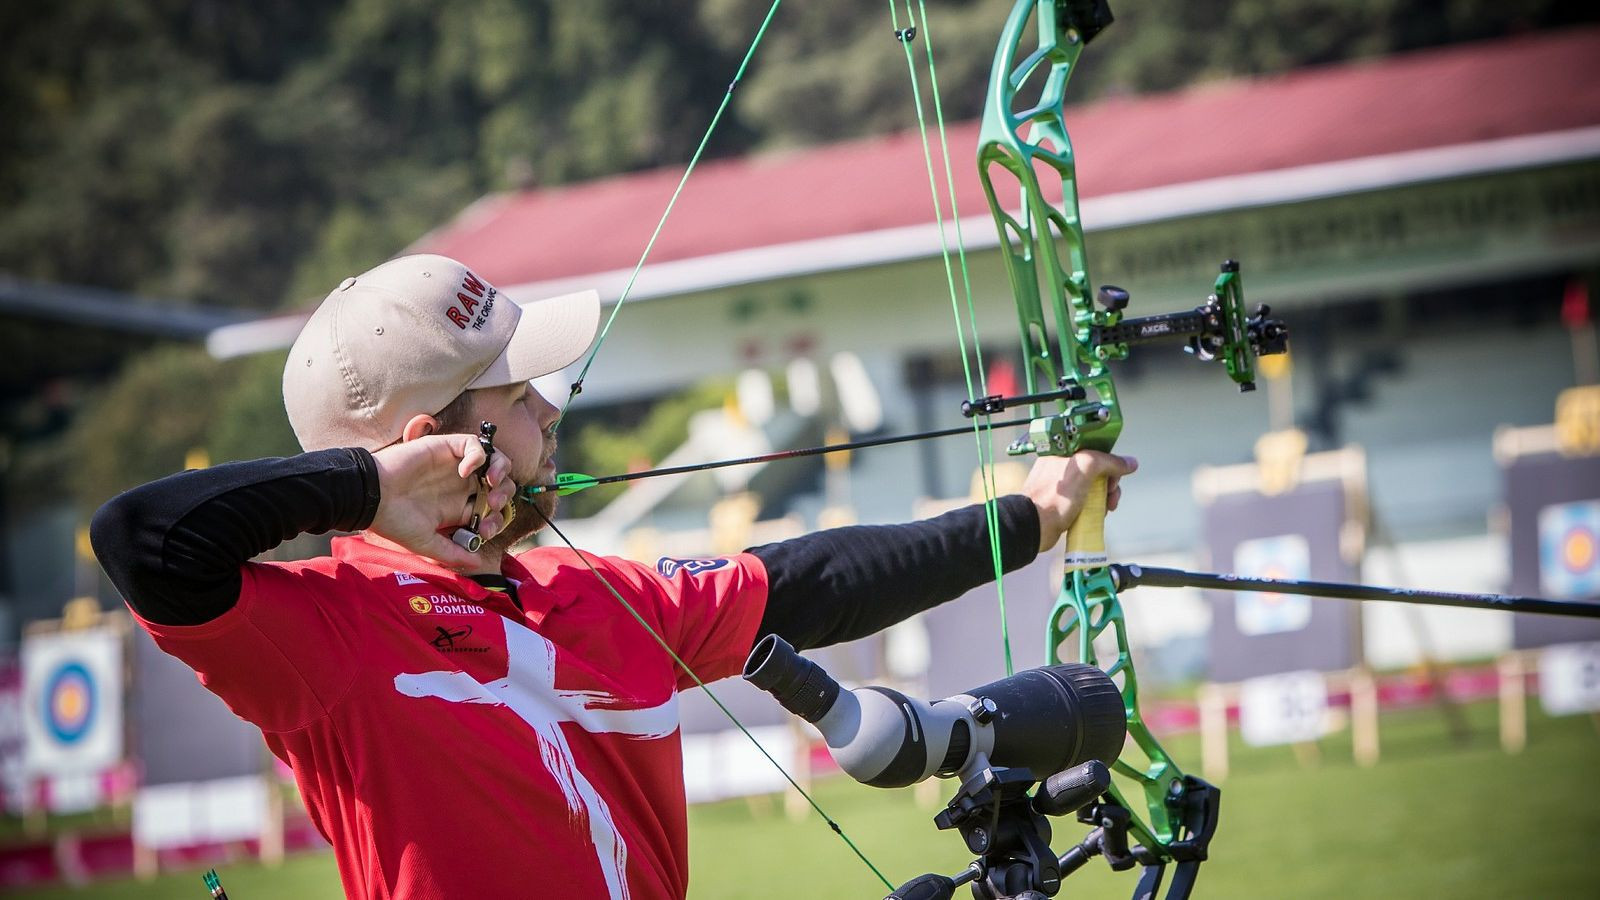 Denmark's Stephan Hansen will have the opportunity to seal the defence of his men's compound global crown on Saturday (October 21) ©World Archery